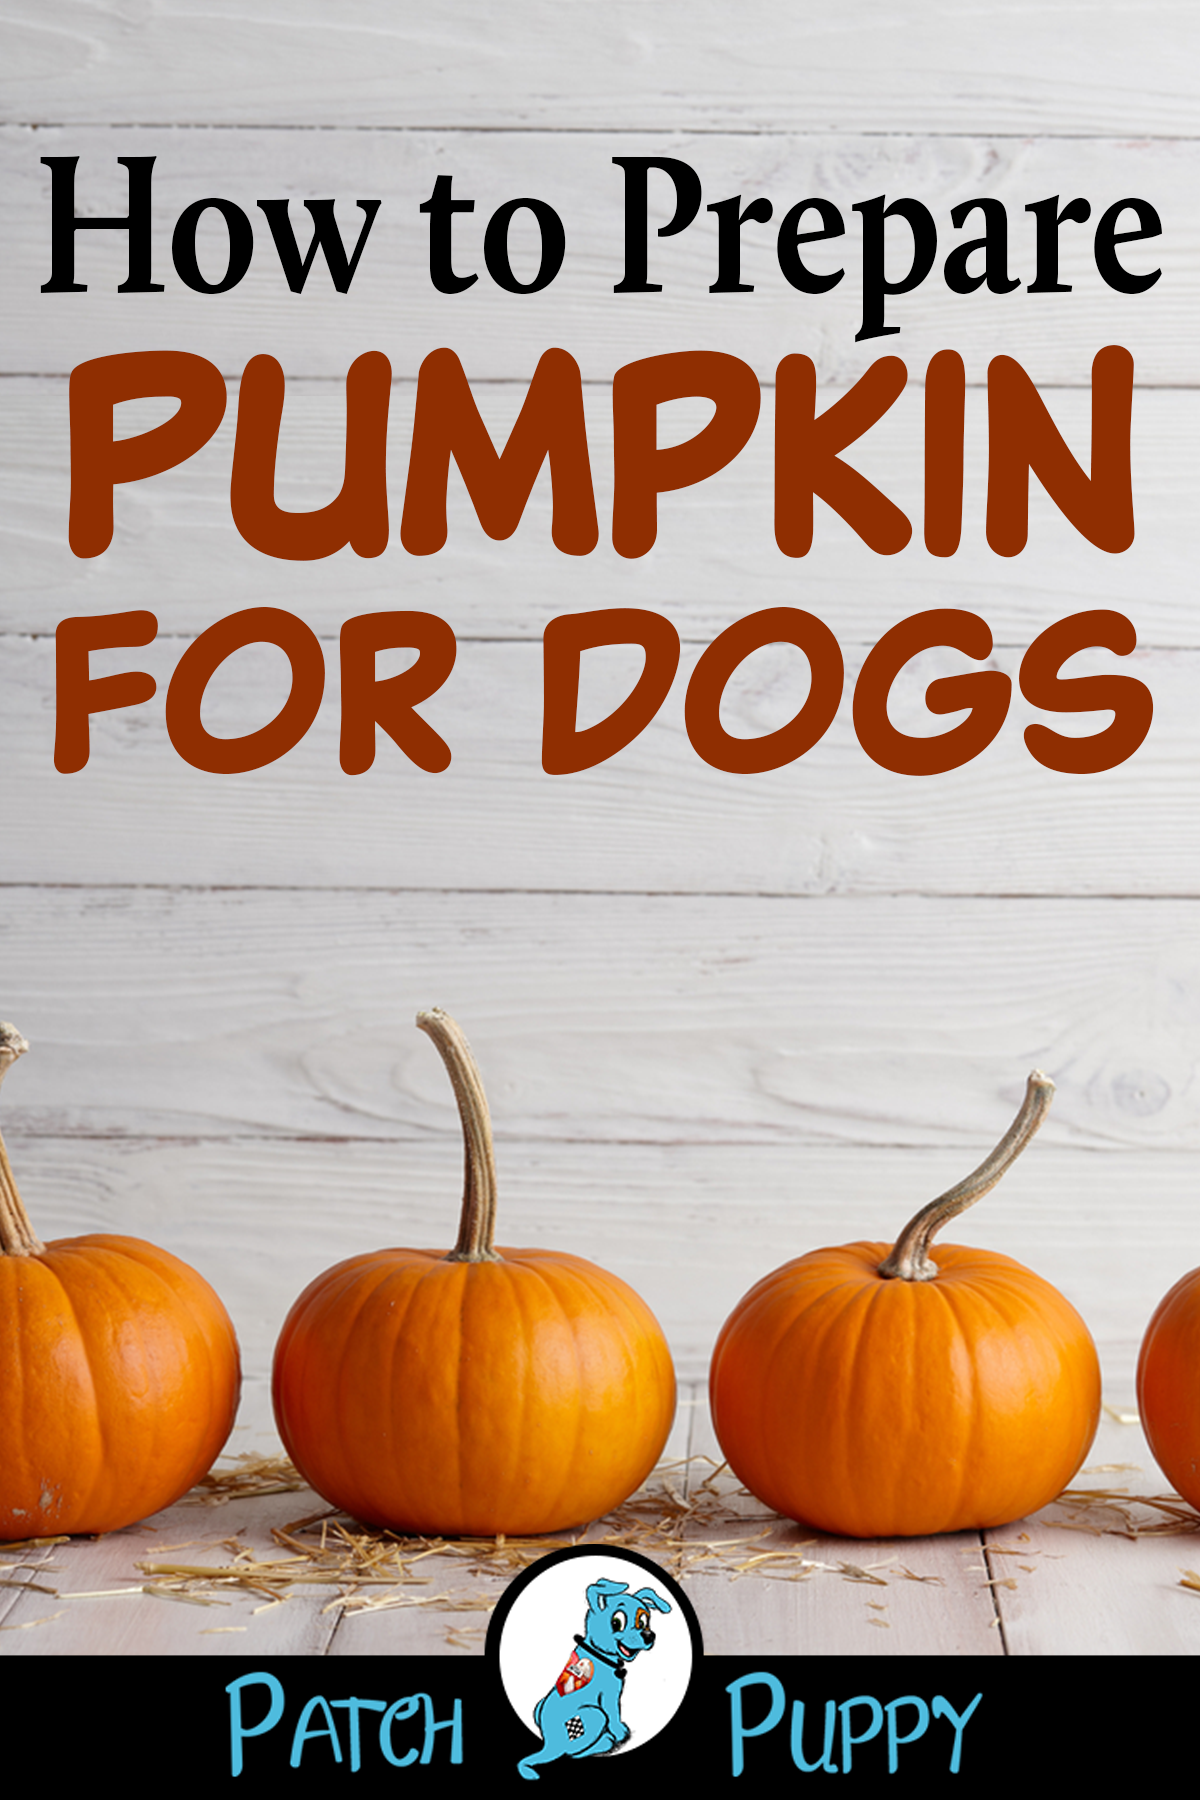 3 Pawsome Recipes Homemade Pumpkin Pupcakes For Dogs With Images Foods Dogs Can Eat Homemade Dog Cookies Easy Dog Treat Recipes